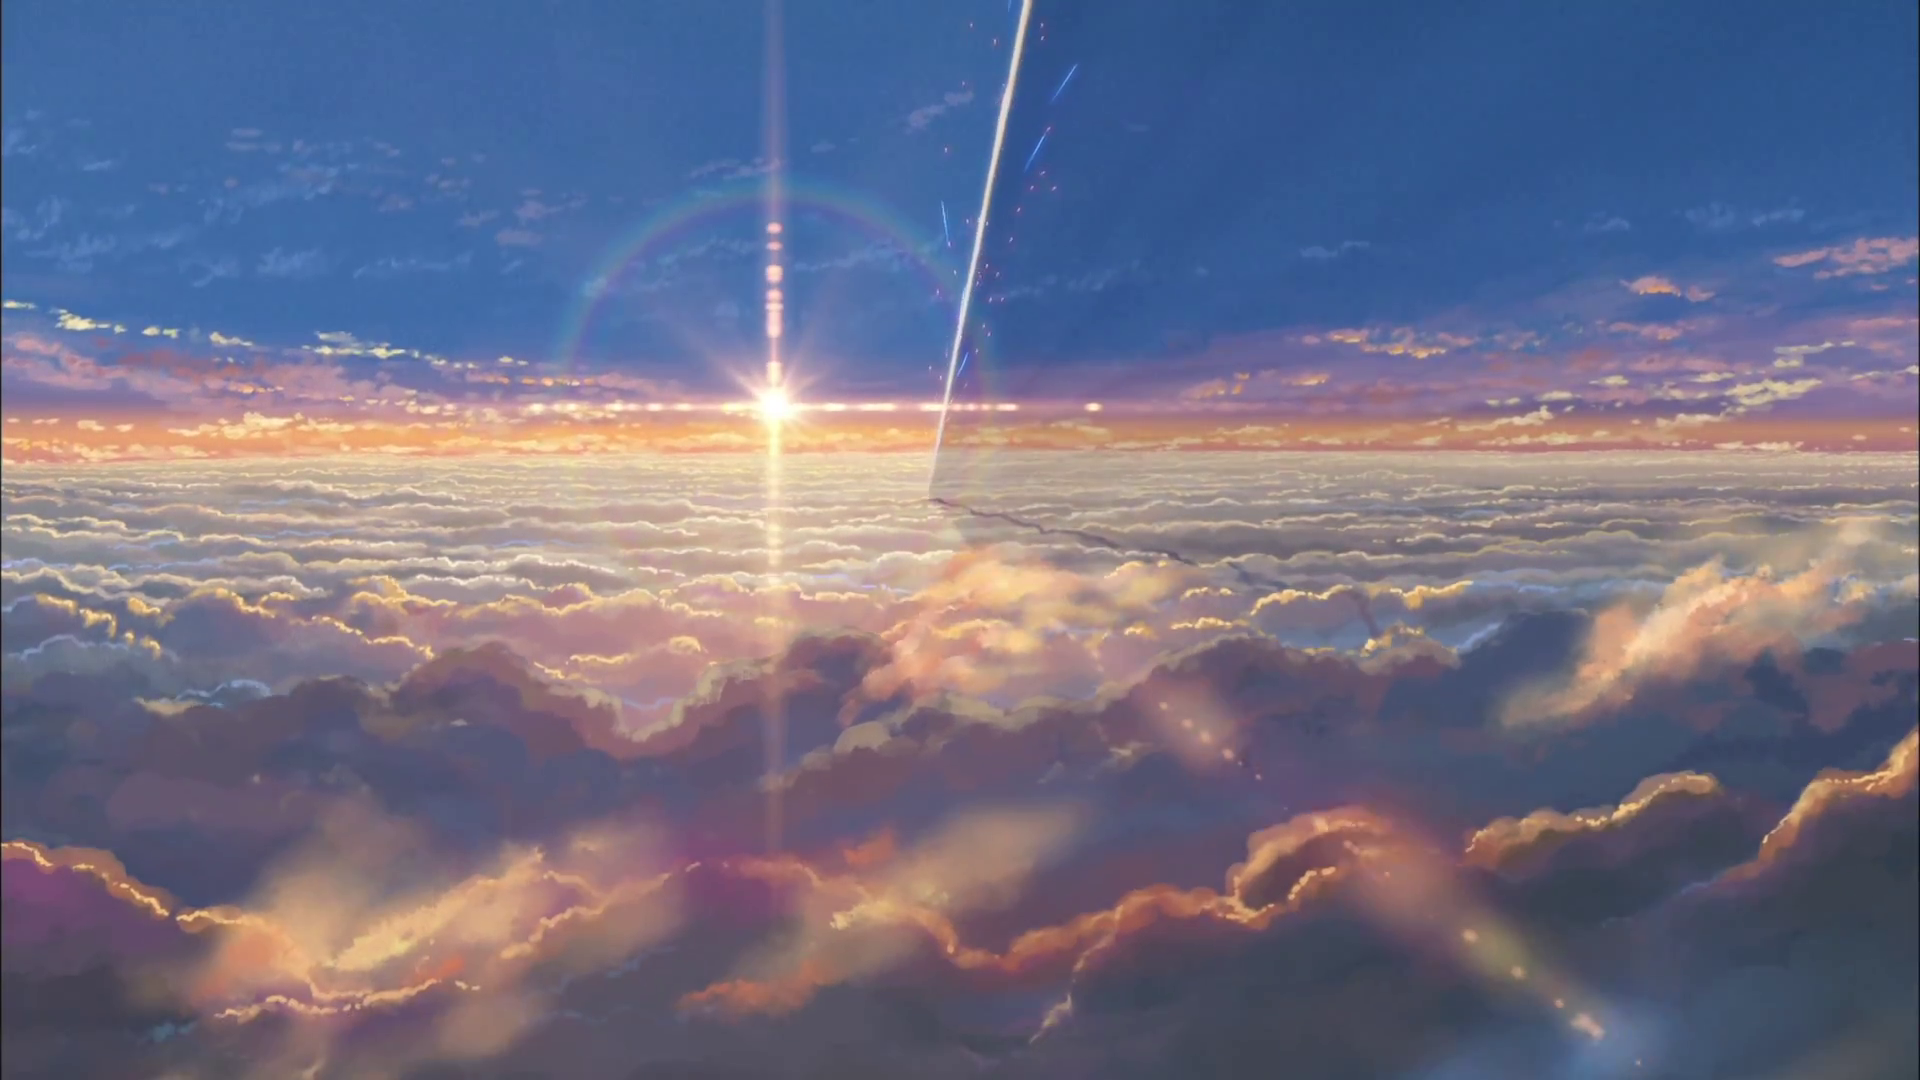 Kimi No Na Wa Wallpaper Kimi No Na Wa Wallpaper 39515375